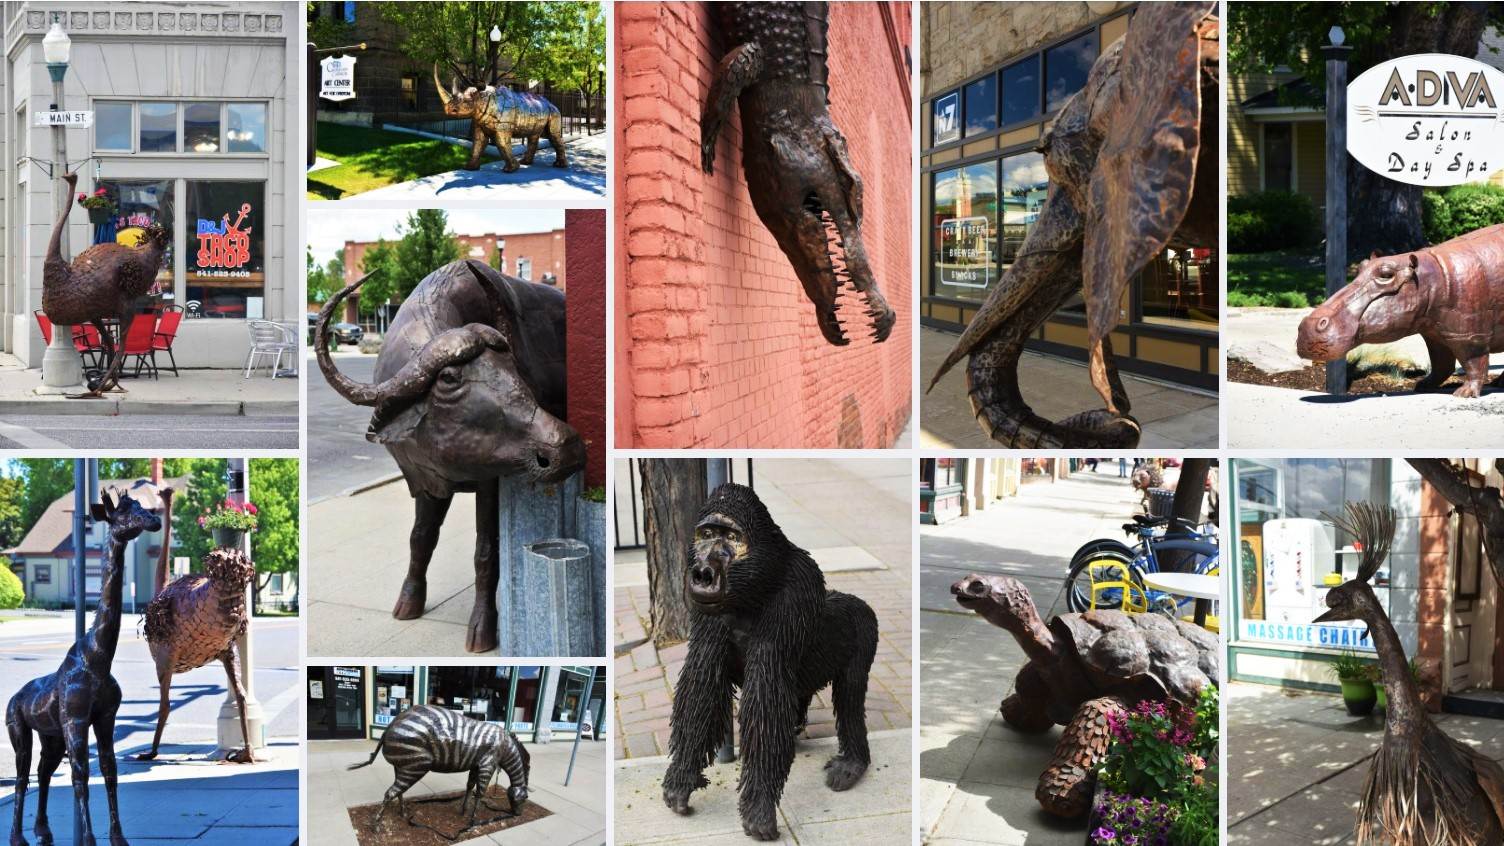 Downtown Baker City out door art instalation featuring exotic african wildlife metal sculptures including crocodiles, an Elephant, giraffes and more